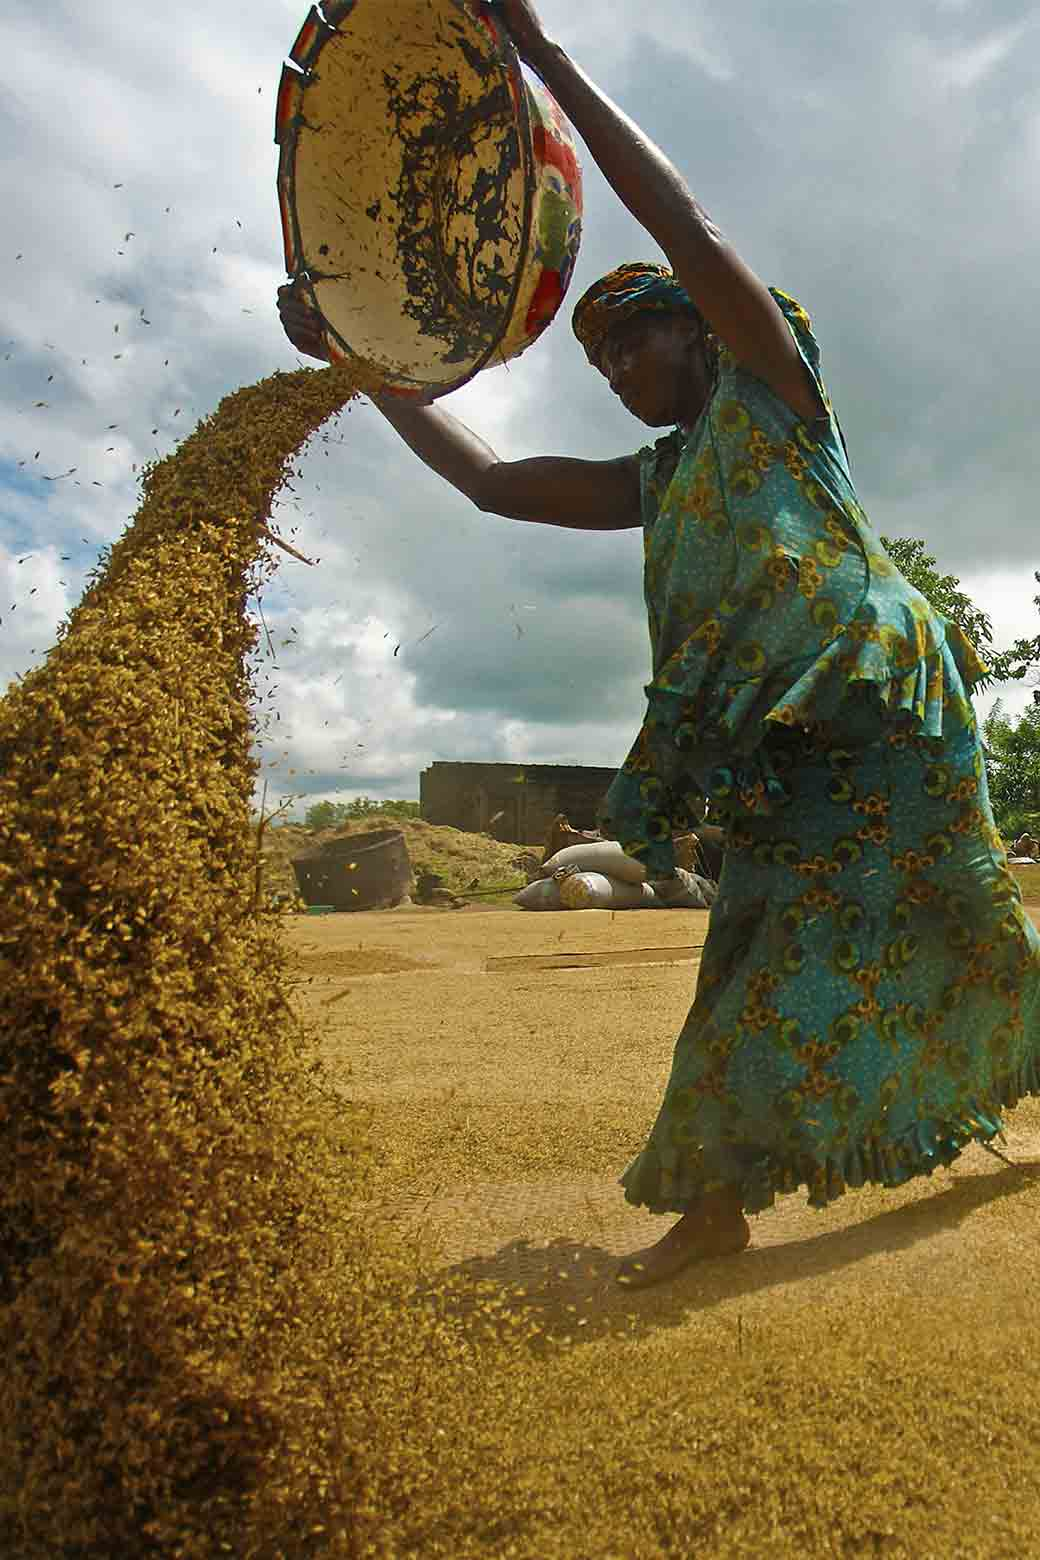 Winnowing, pictured here, improves the quality of farmer's grains by removing impurities and is predominantly carried out by women.